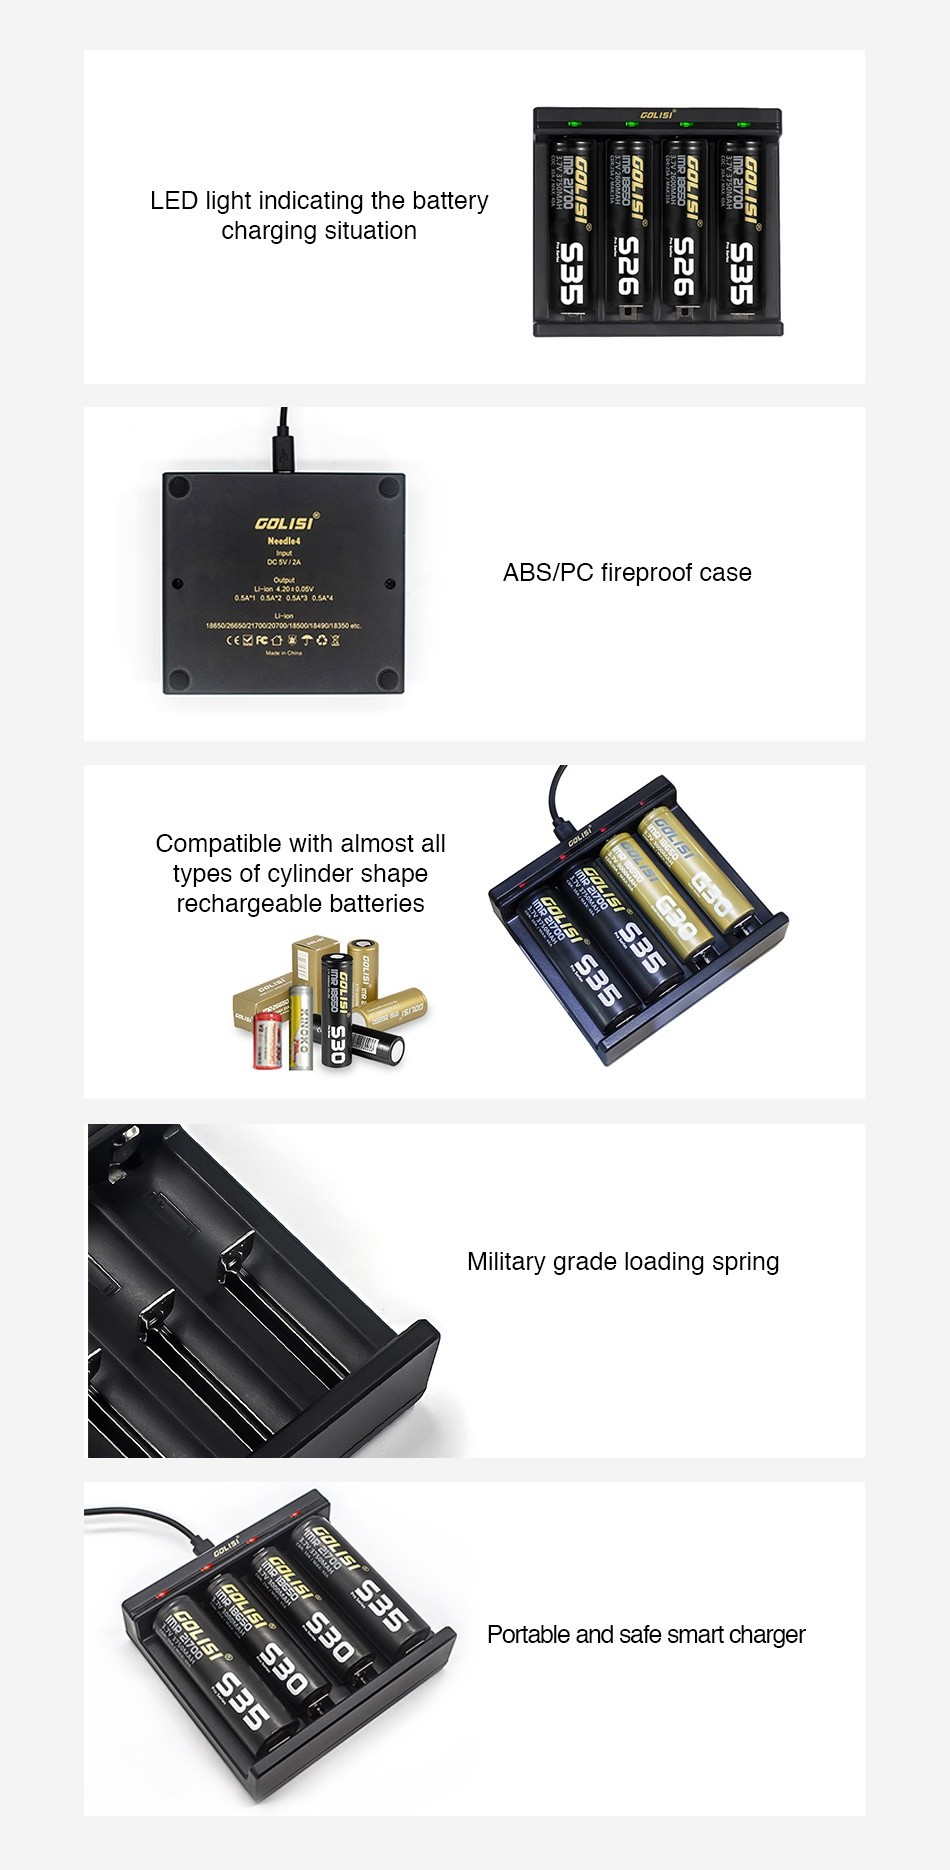 Golisi Needle 4 Smart USB Charger ED light indicating the battery charging situation UU HU iU i  Um U UL BOLISI ABS PC fireproof case  F     Compatible with almost all types of cylinder shape rechargeable batteries Military grade loading spring Portable and safe smart charger